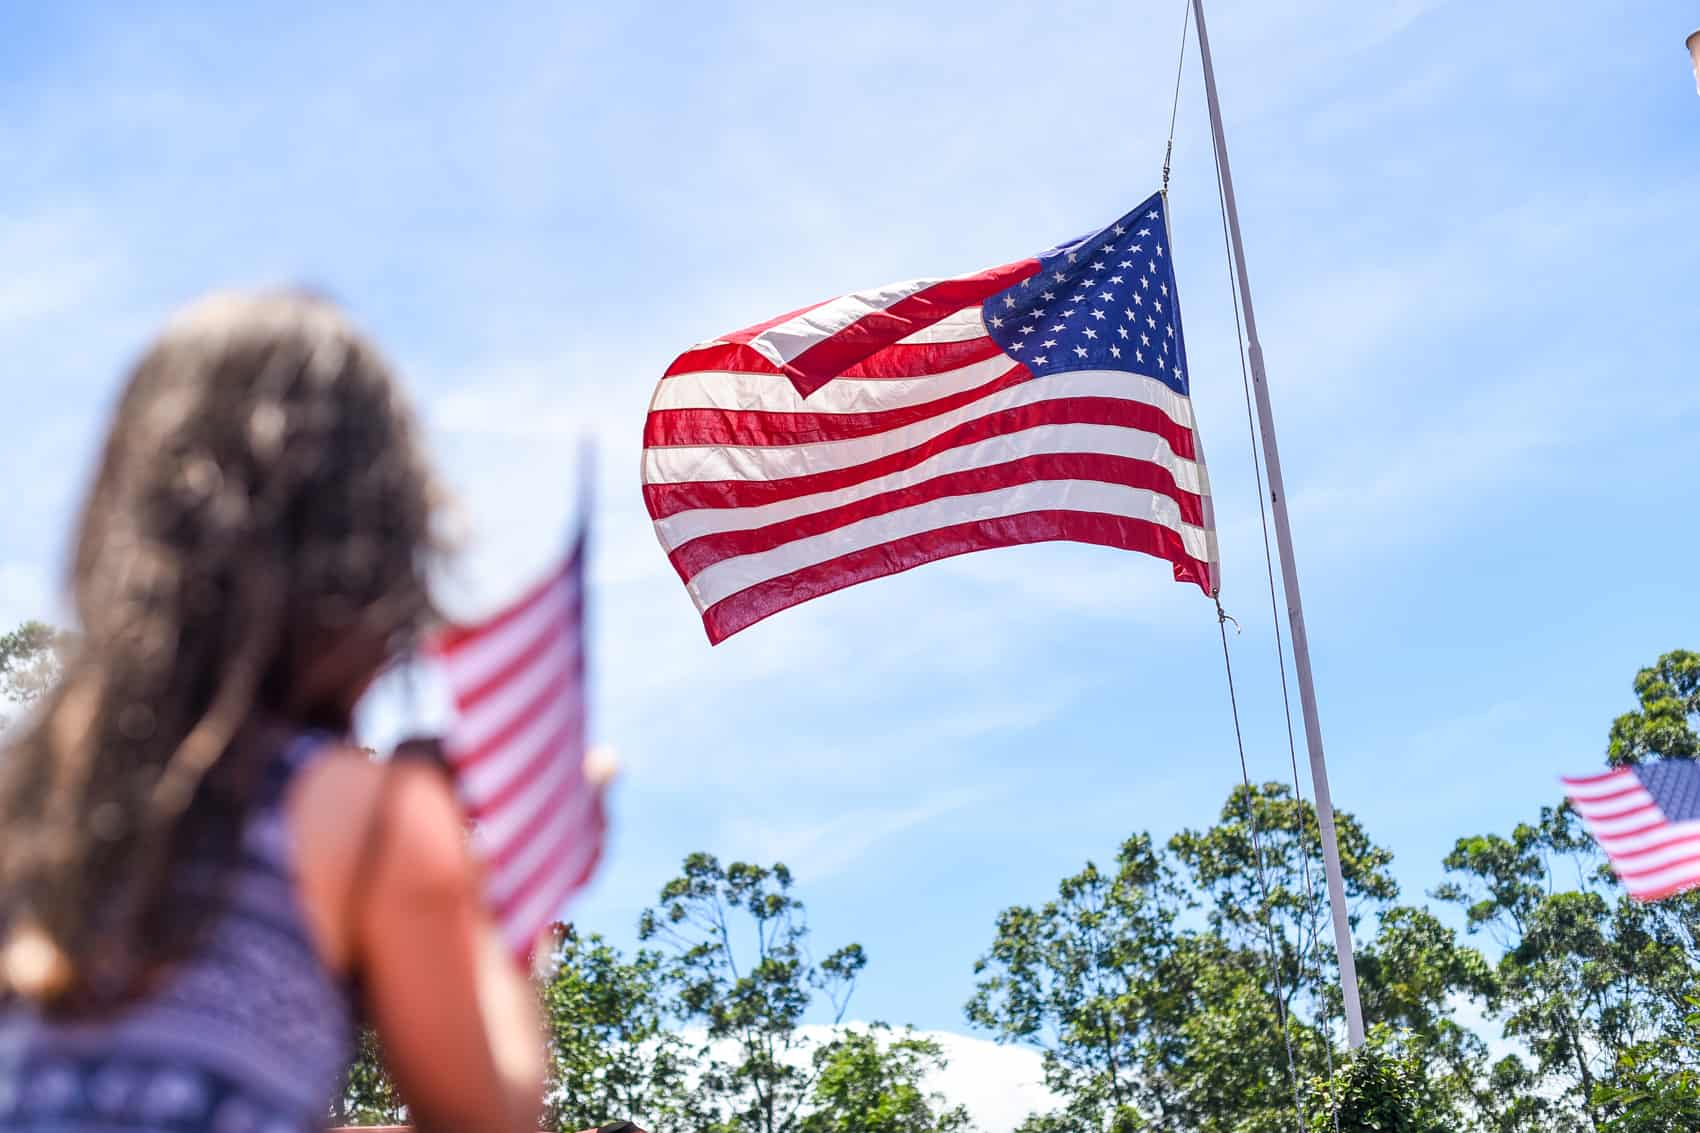 A girl looks on as the American flag ascends the flag pole.